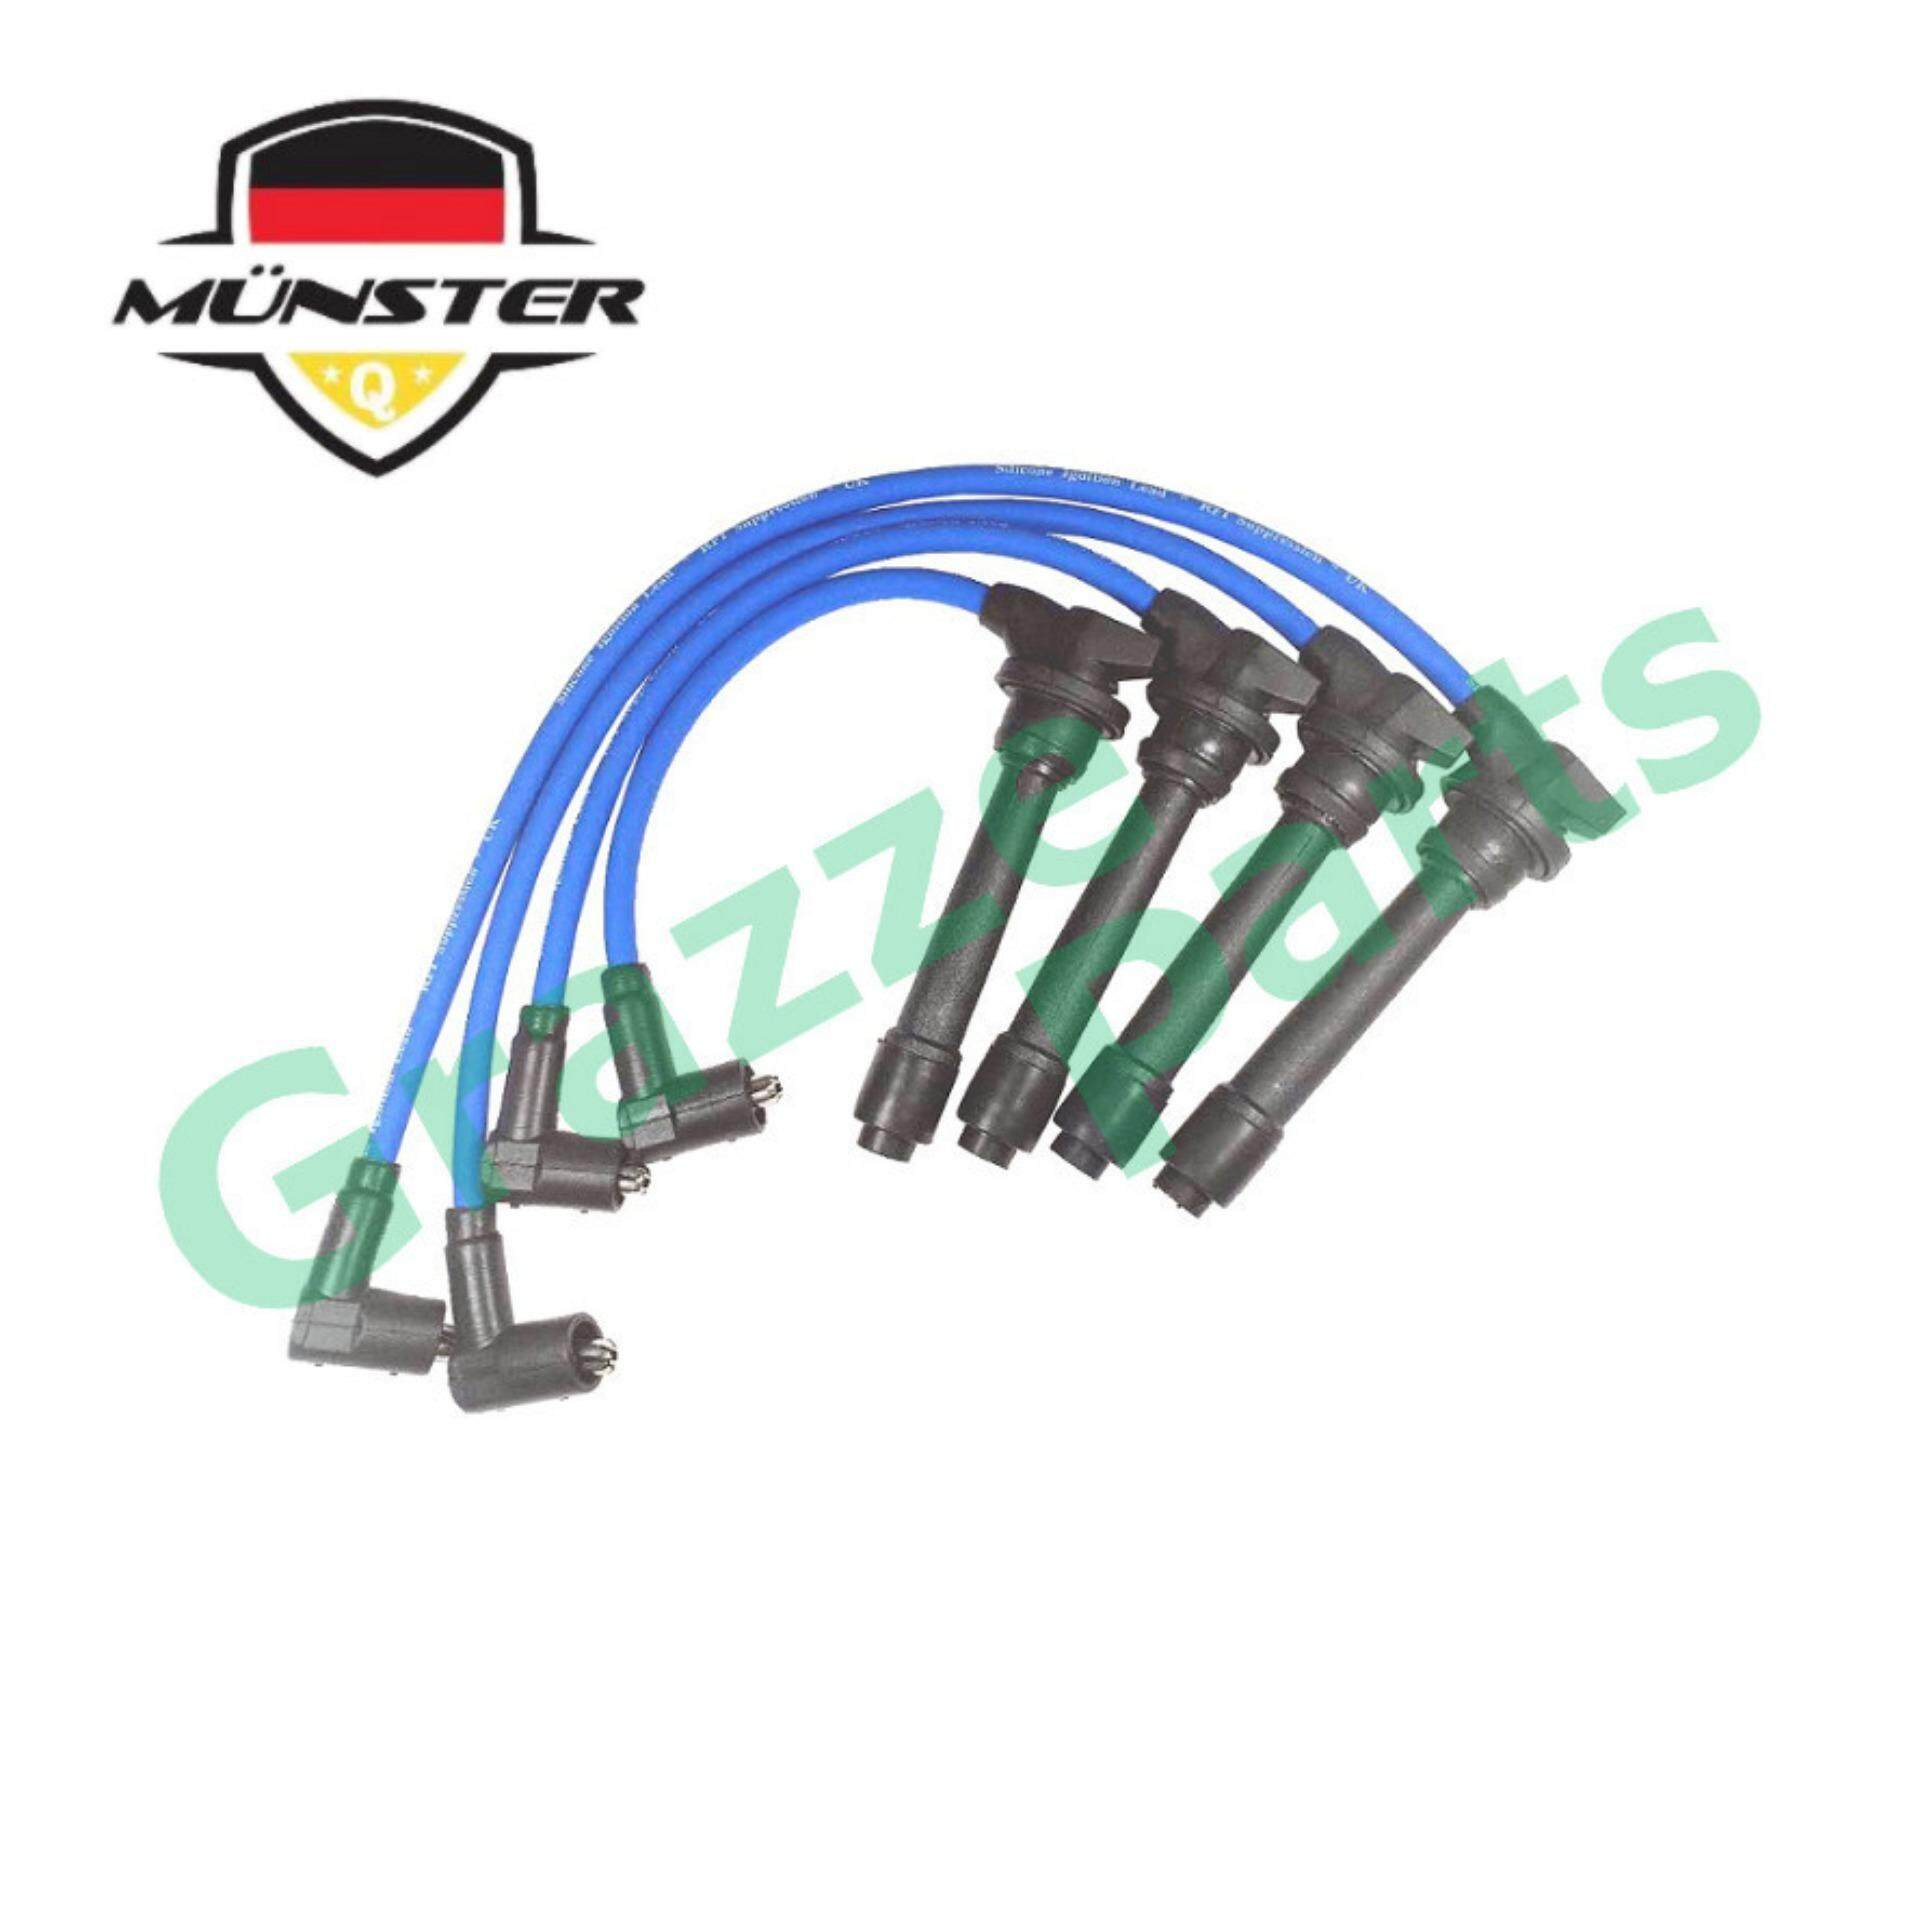 Münster Plug Cable 6033 for Hyundai Matrix 1 8 DOHC Year 2003